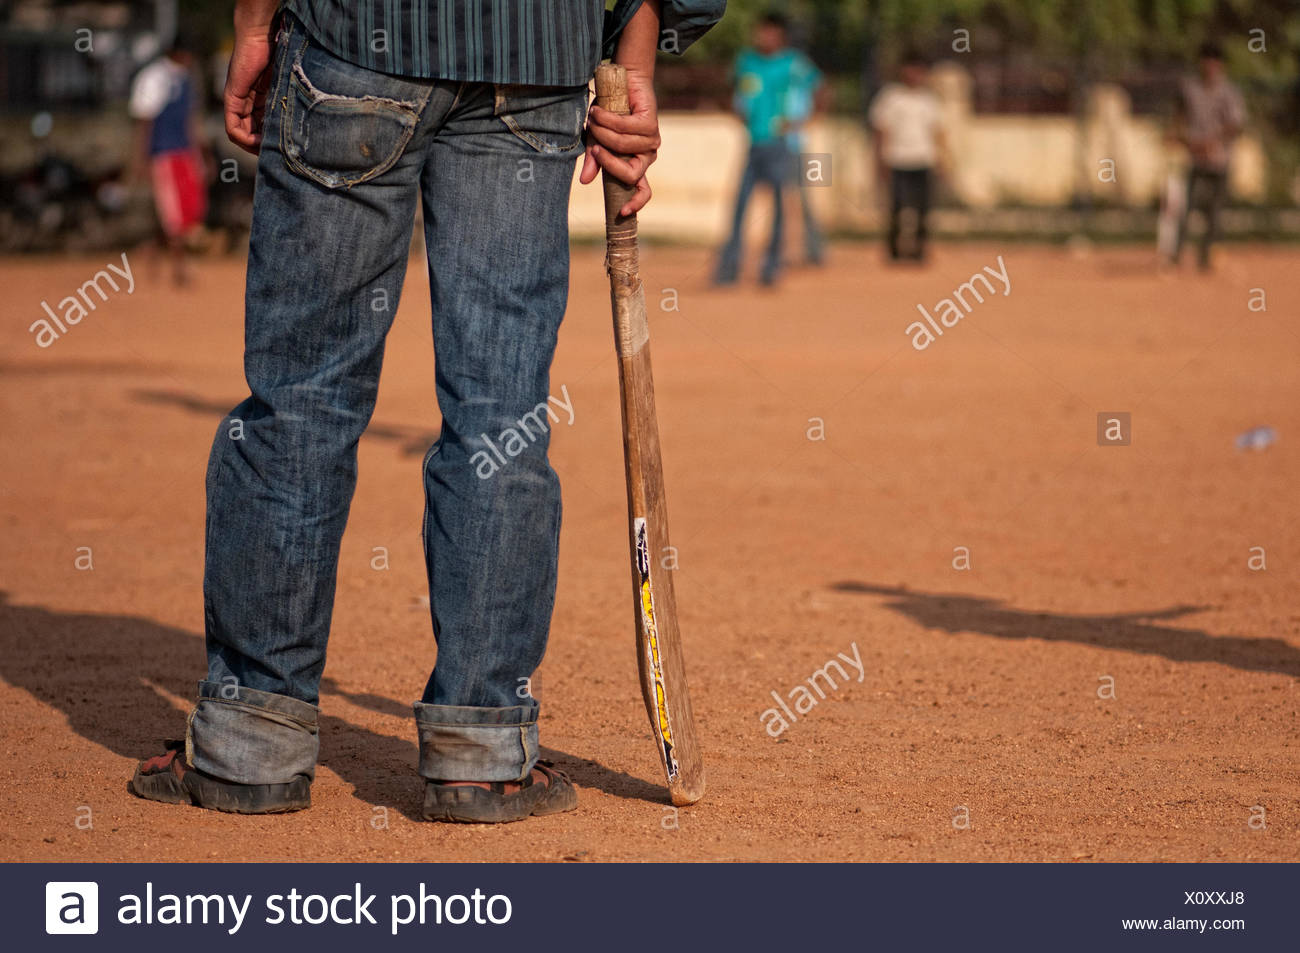 Indian boys play cricket at the school cricket ground in Teynampet, Chennai, India. - Stock Image